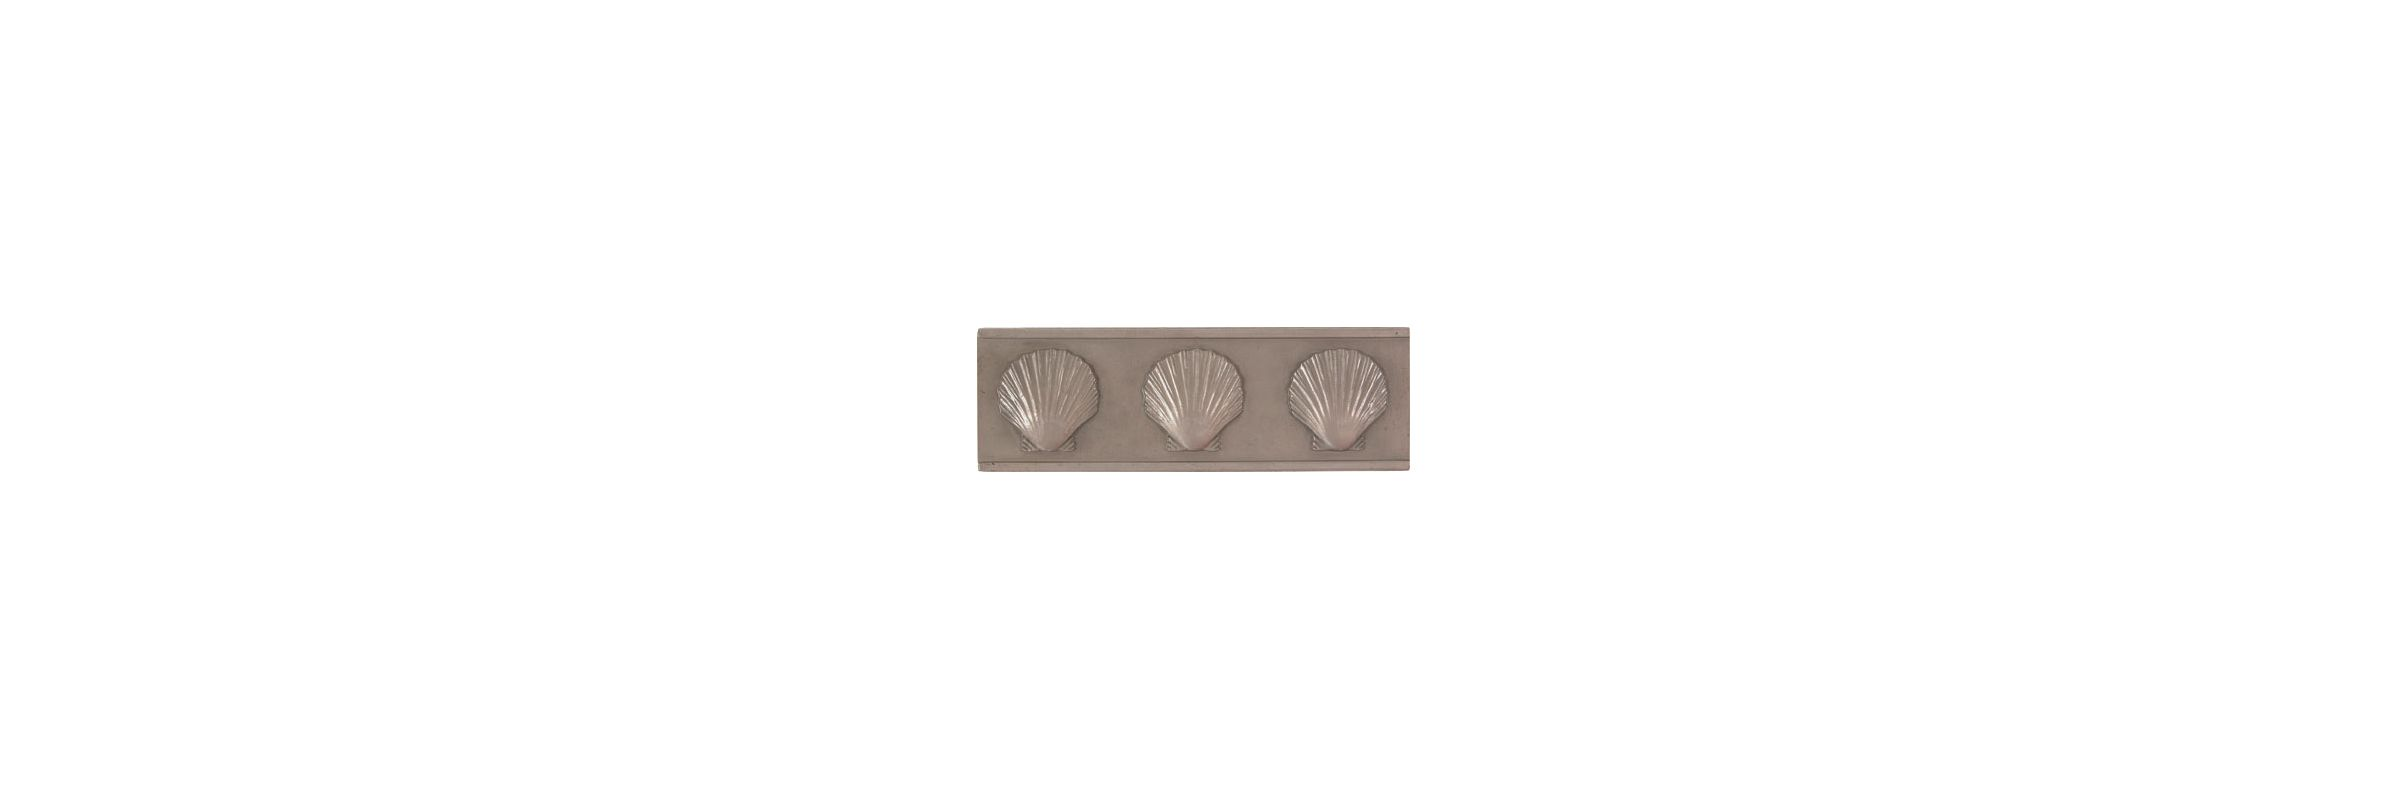 Brass Elegans 52S PWT Pewter Tile Brass Elegans 52S PWT Traditional Shell 6 x 2 Range Hood Backsplash Tile